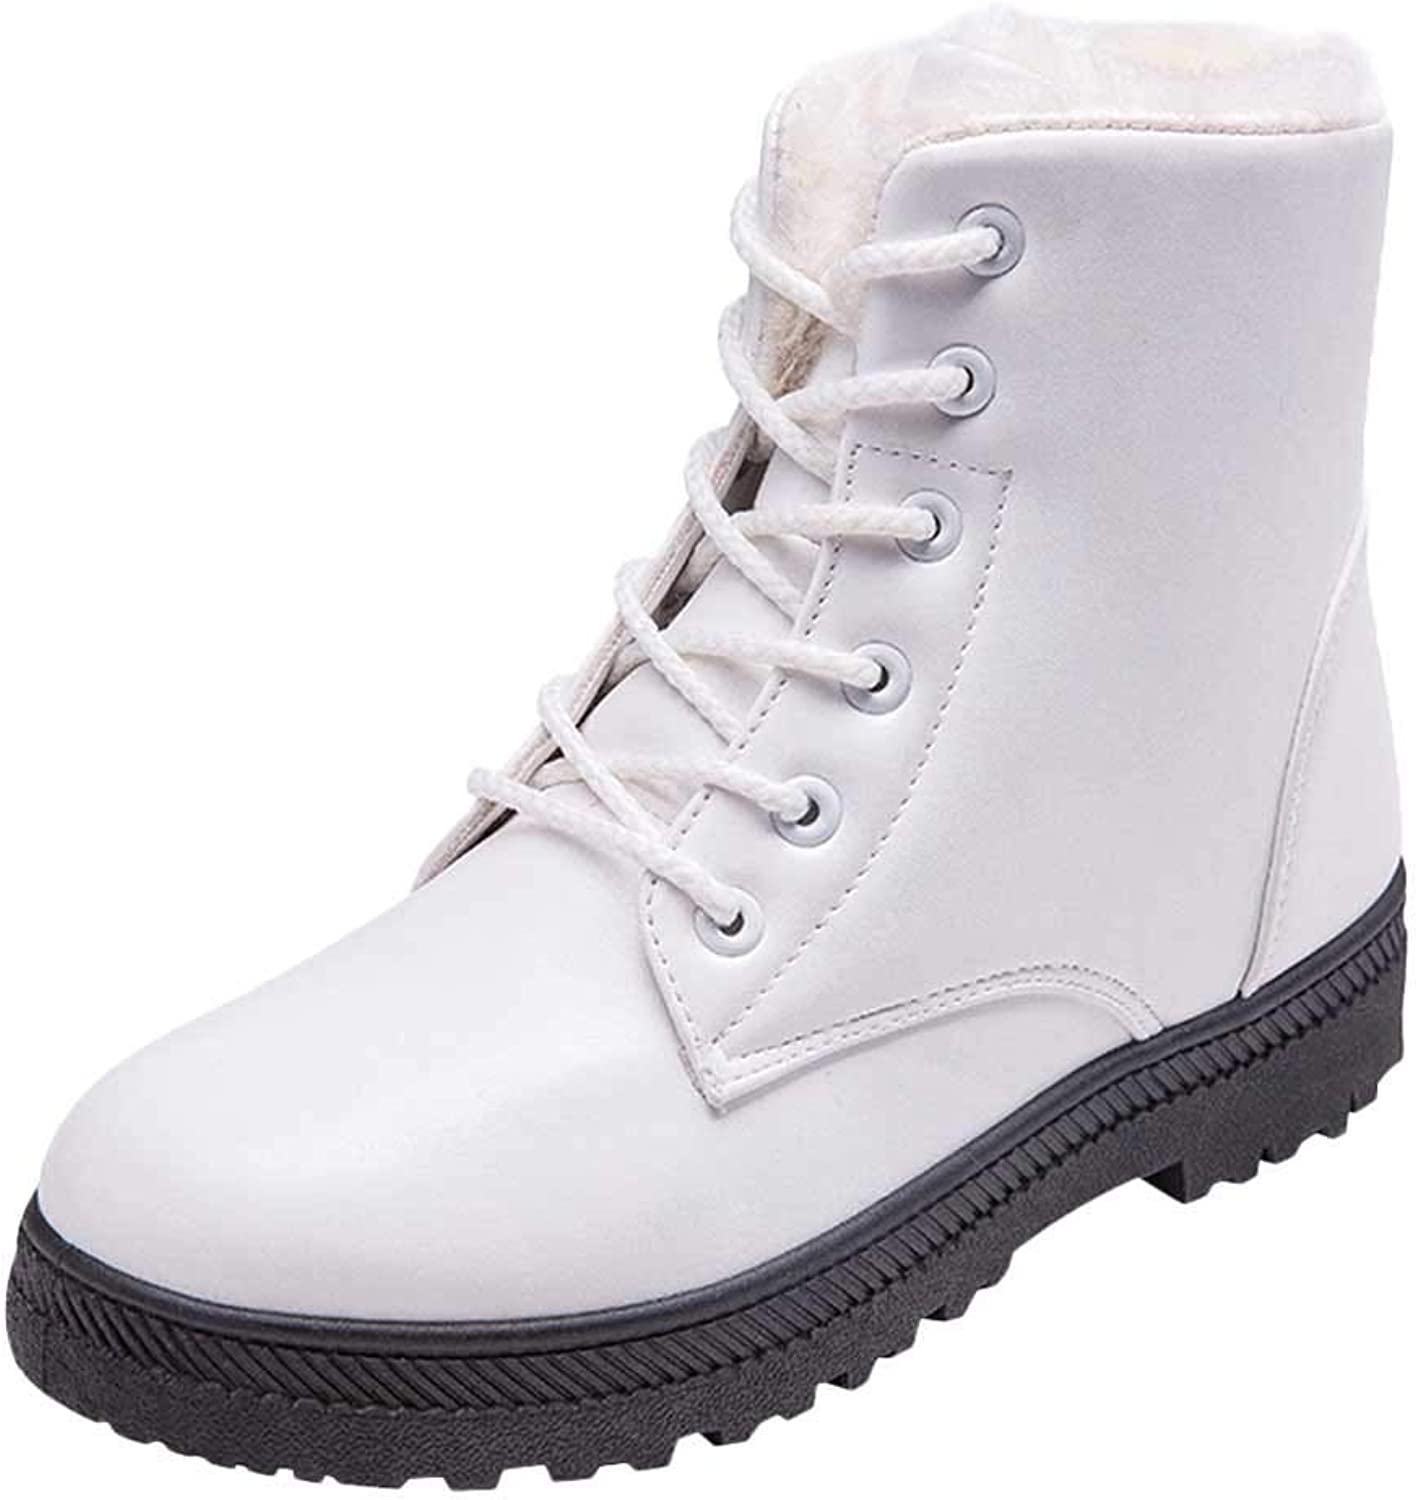 SUNNY Store Women's Suede Waterproof Lace Up Winter High Top Snow Boots